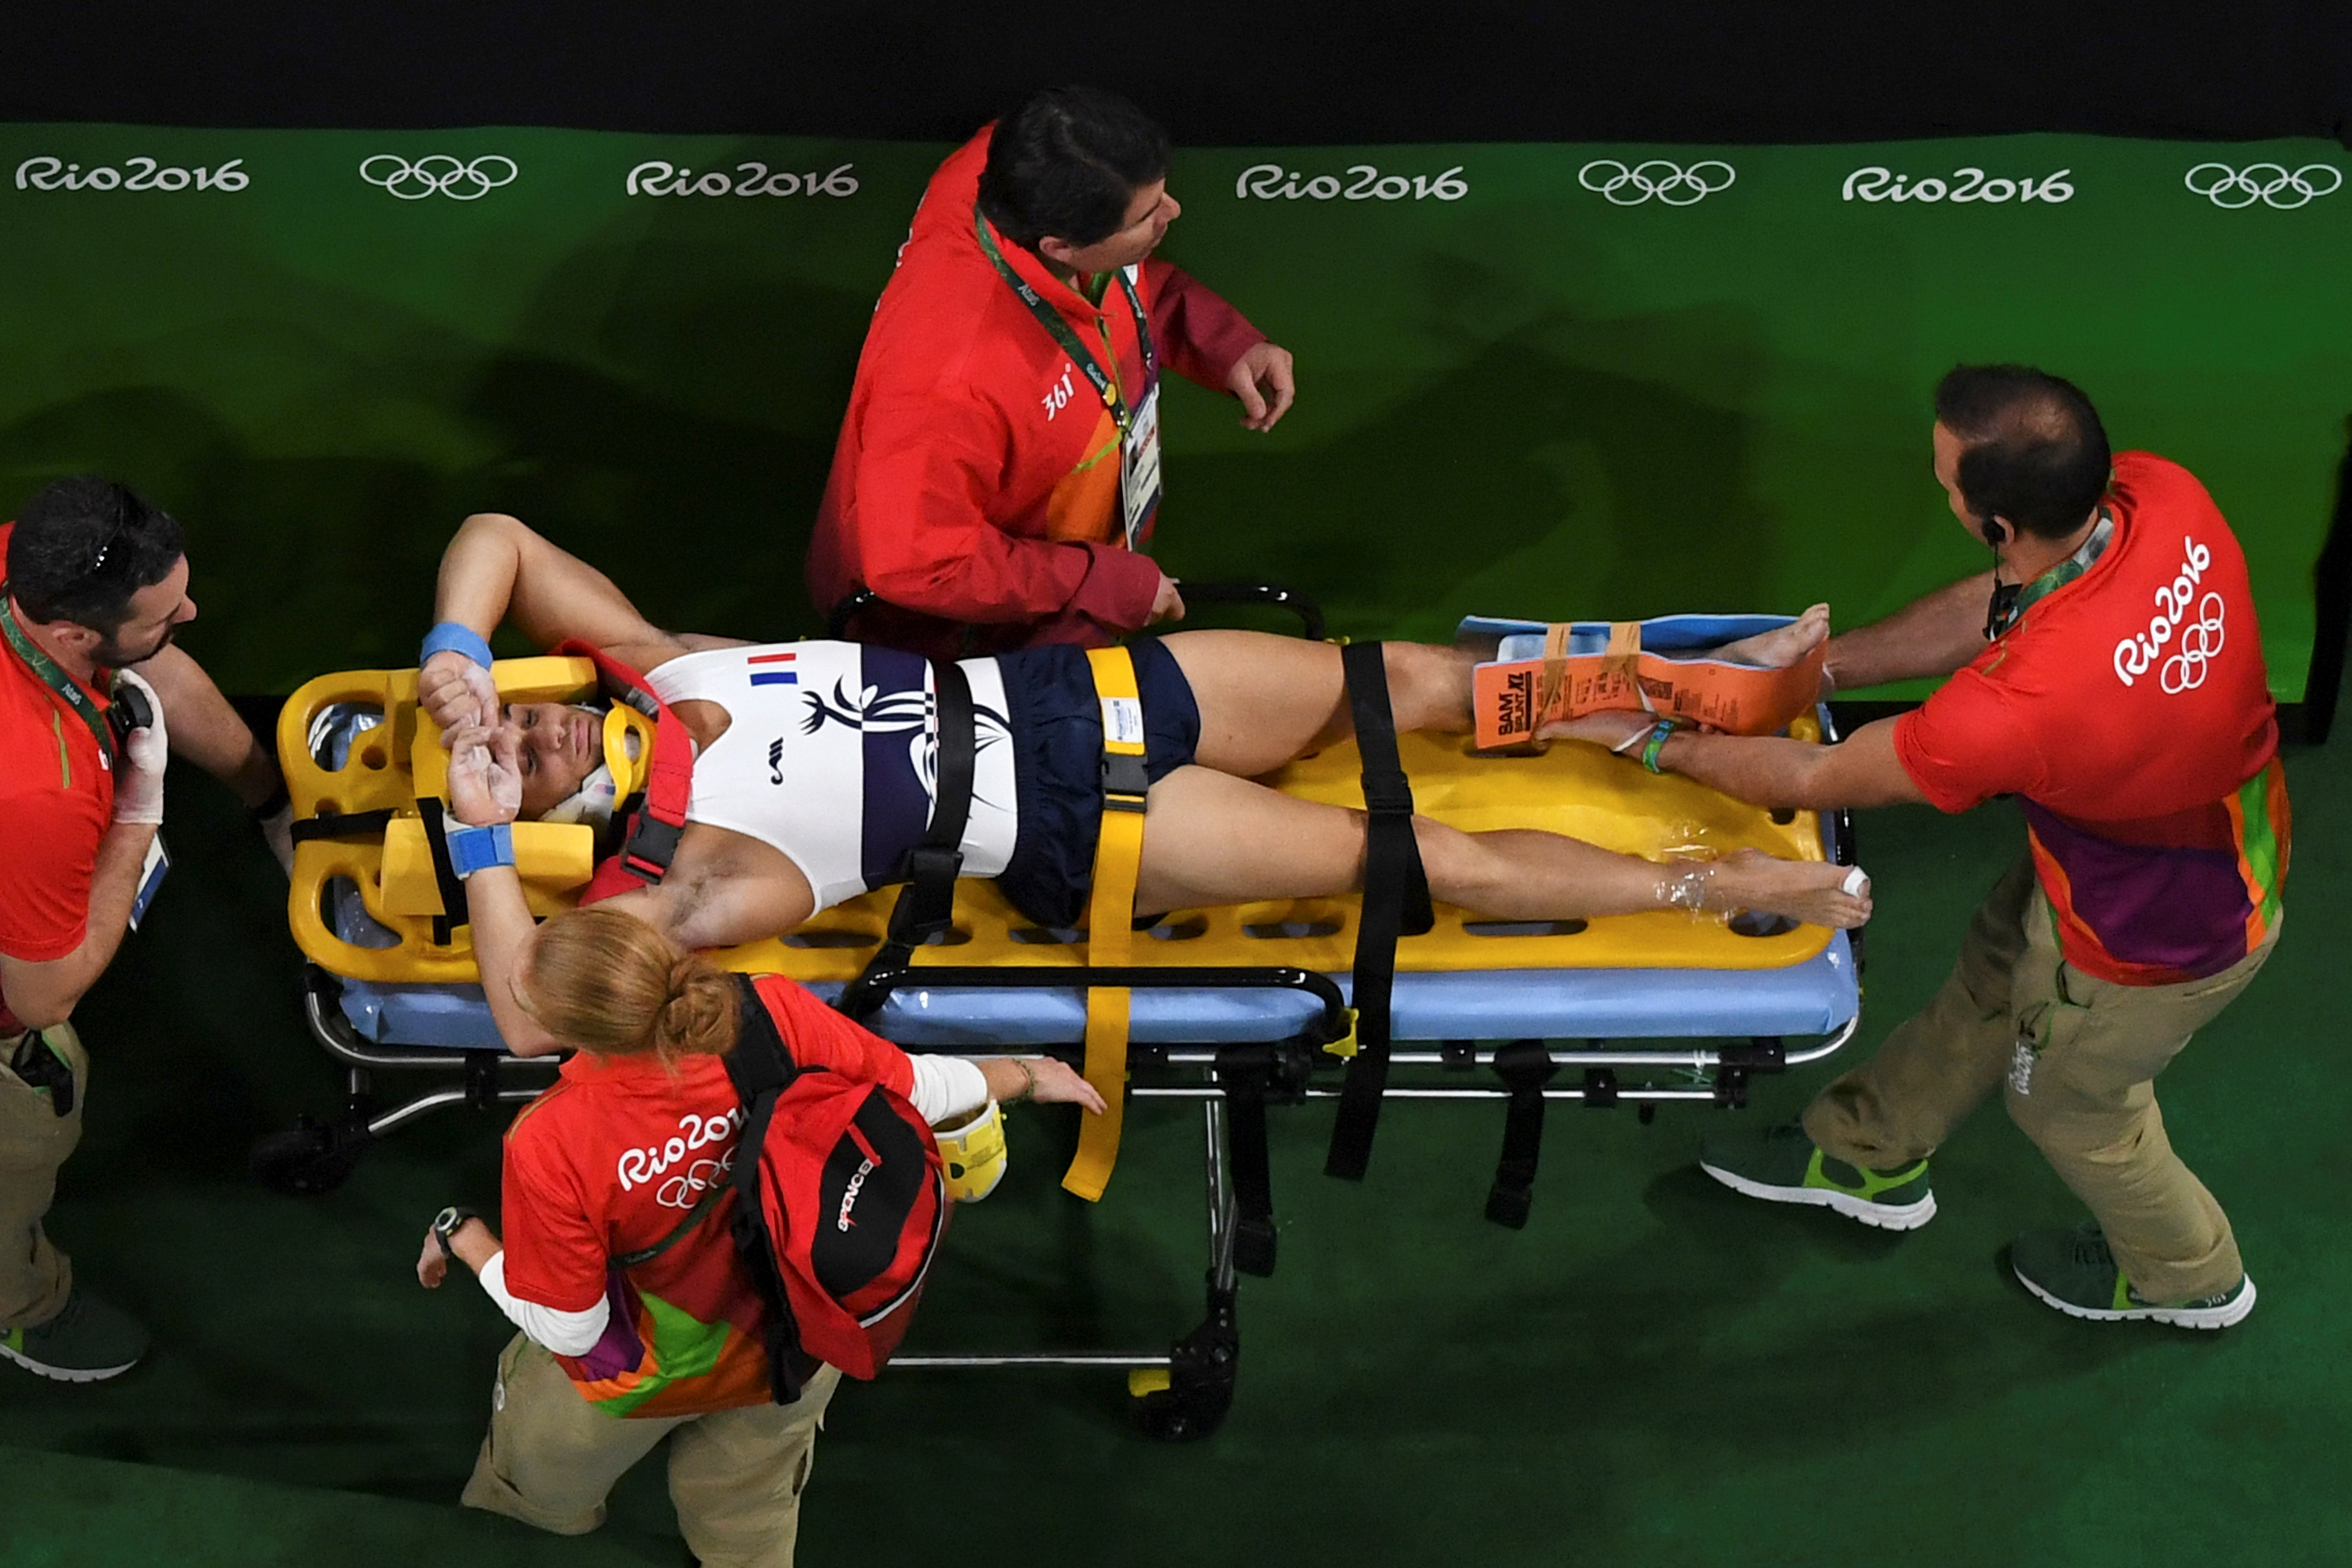 An overview shows France's Samir Ait Said being stretchered off after being injured while competing in the qualifying for the men's vault event of the Artistic Gymnastics at the Olympic Arena during the Rio 2016 Olympic Games in Rio de Janeiro on August 6, 2016. / AFP PHOTO / Antonin THUILLIER